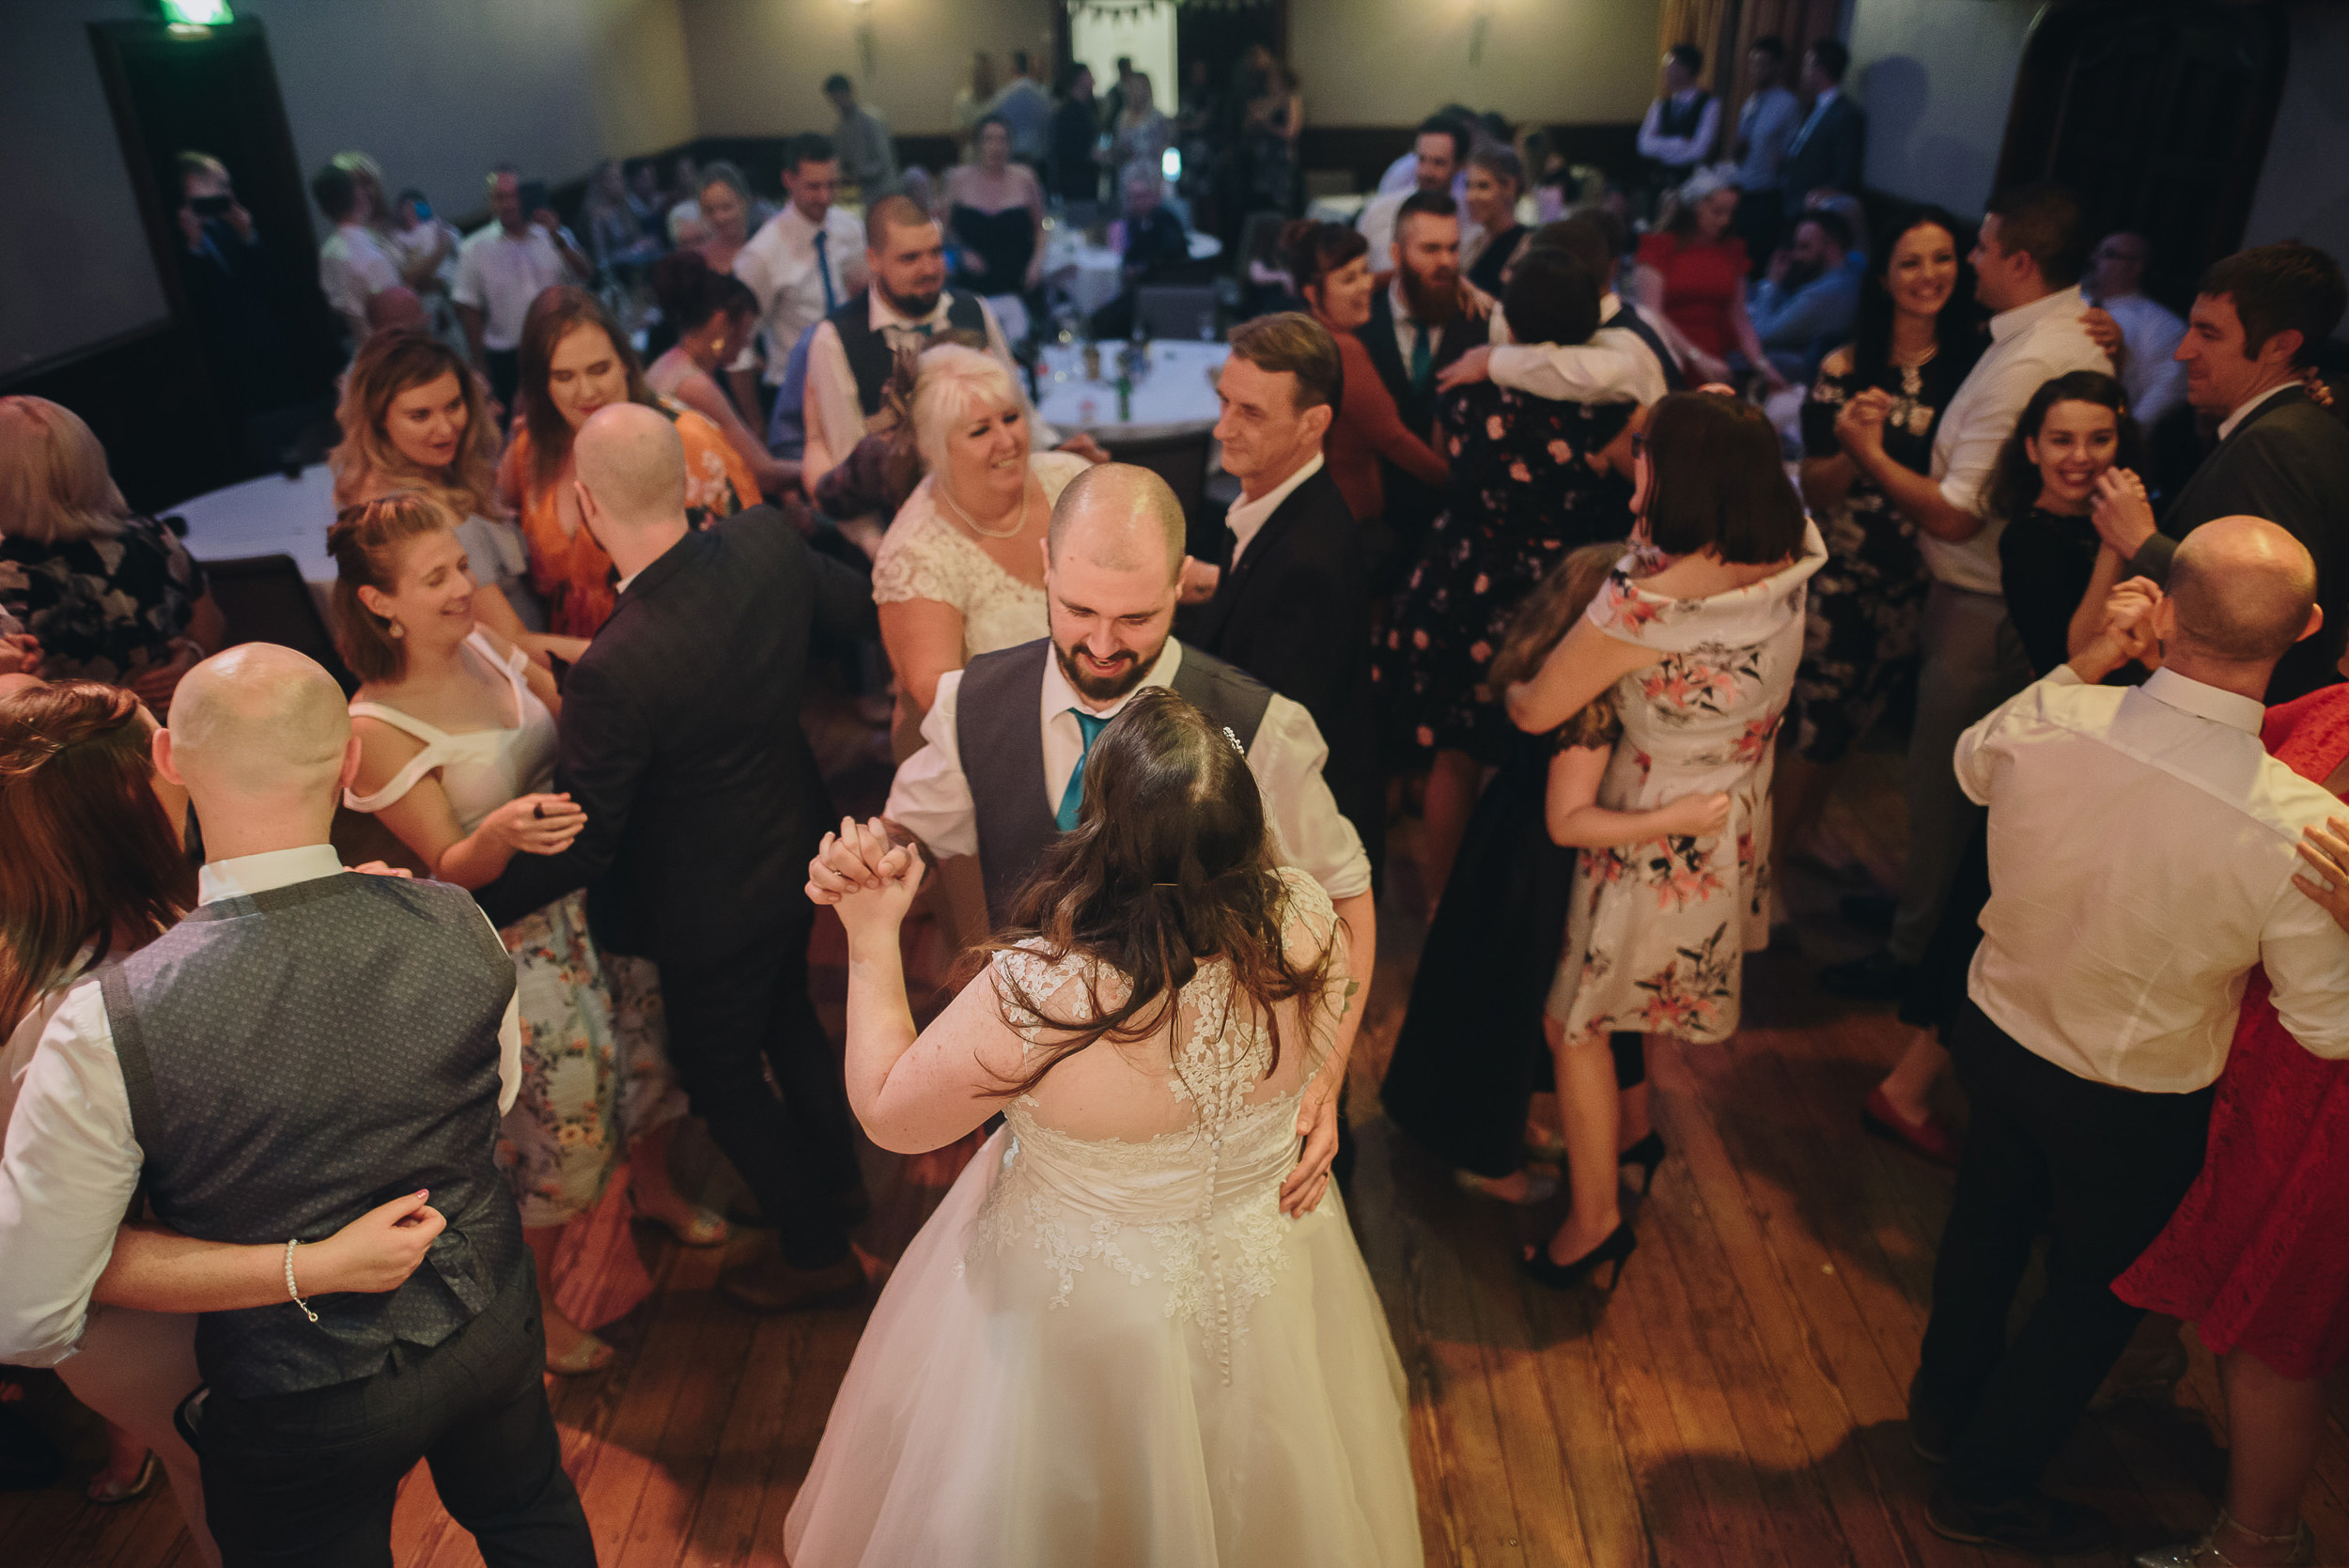 Smithills-hall-wedding-manchester-the-barlow-edgworth-hadfield-122.jpg